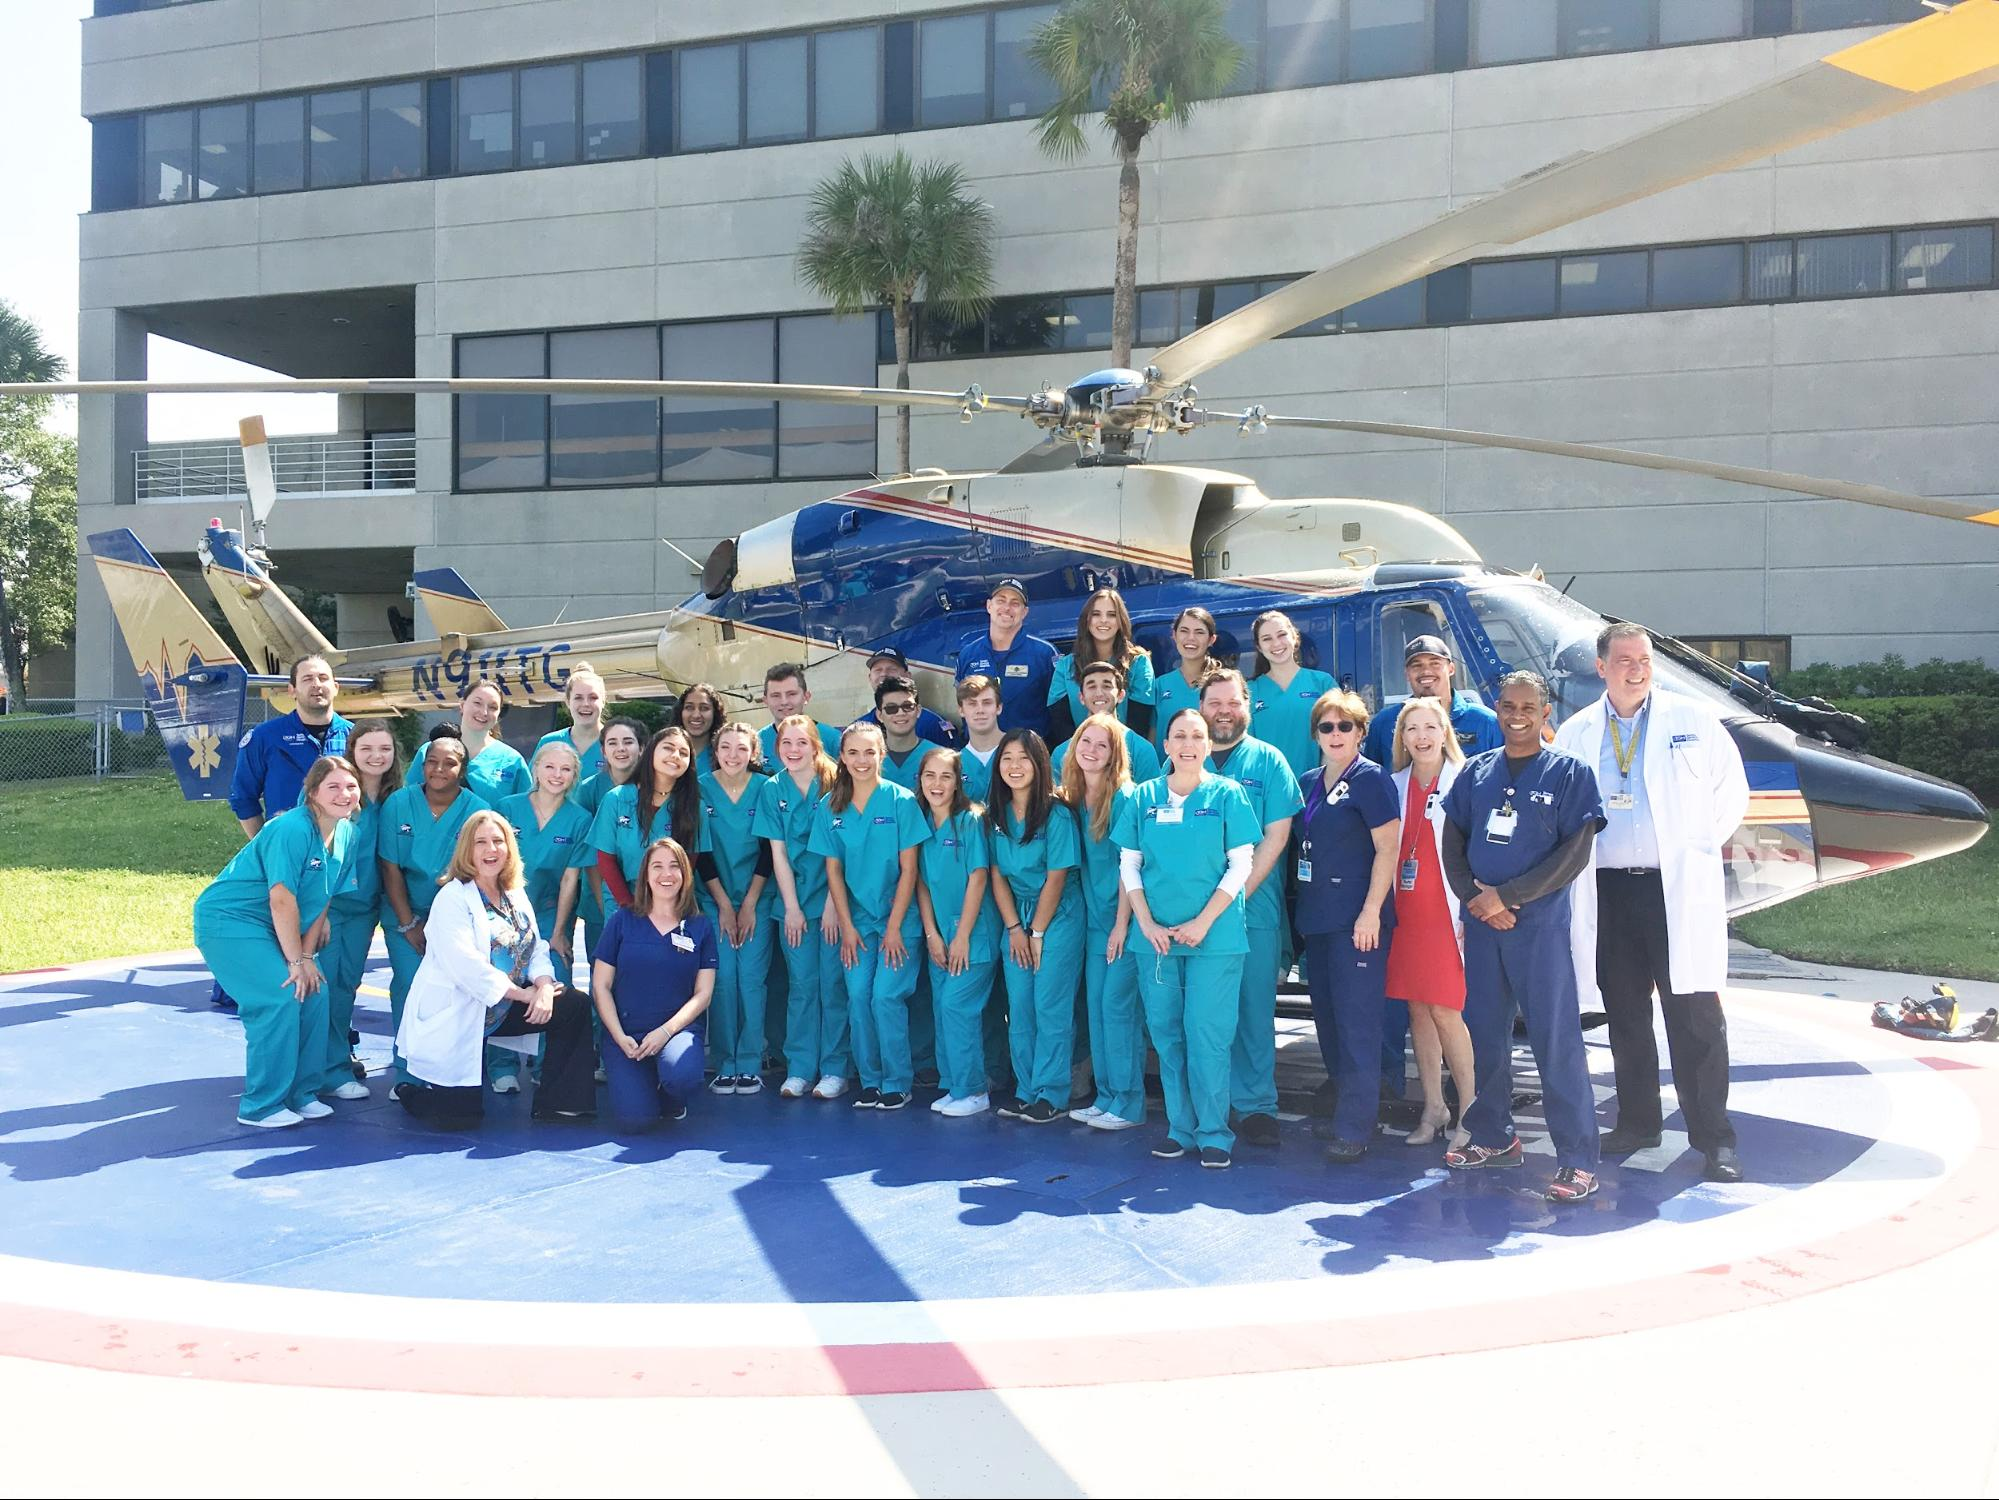 Students in the Medical Explorers Club pose in front of a medical helicopter at Tampa General Hospital